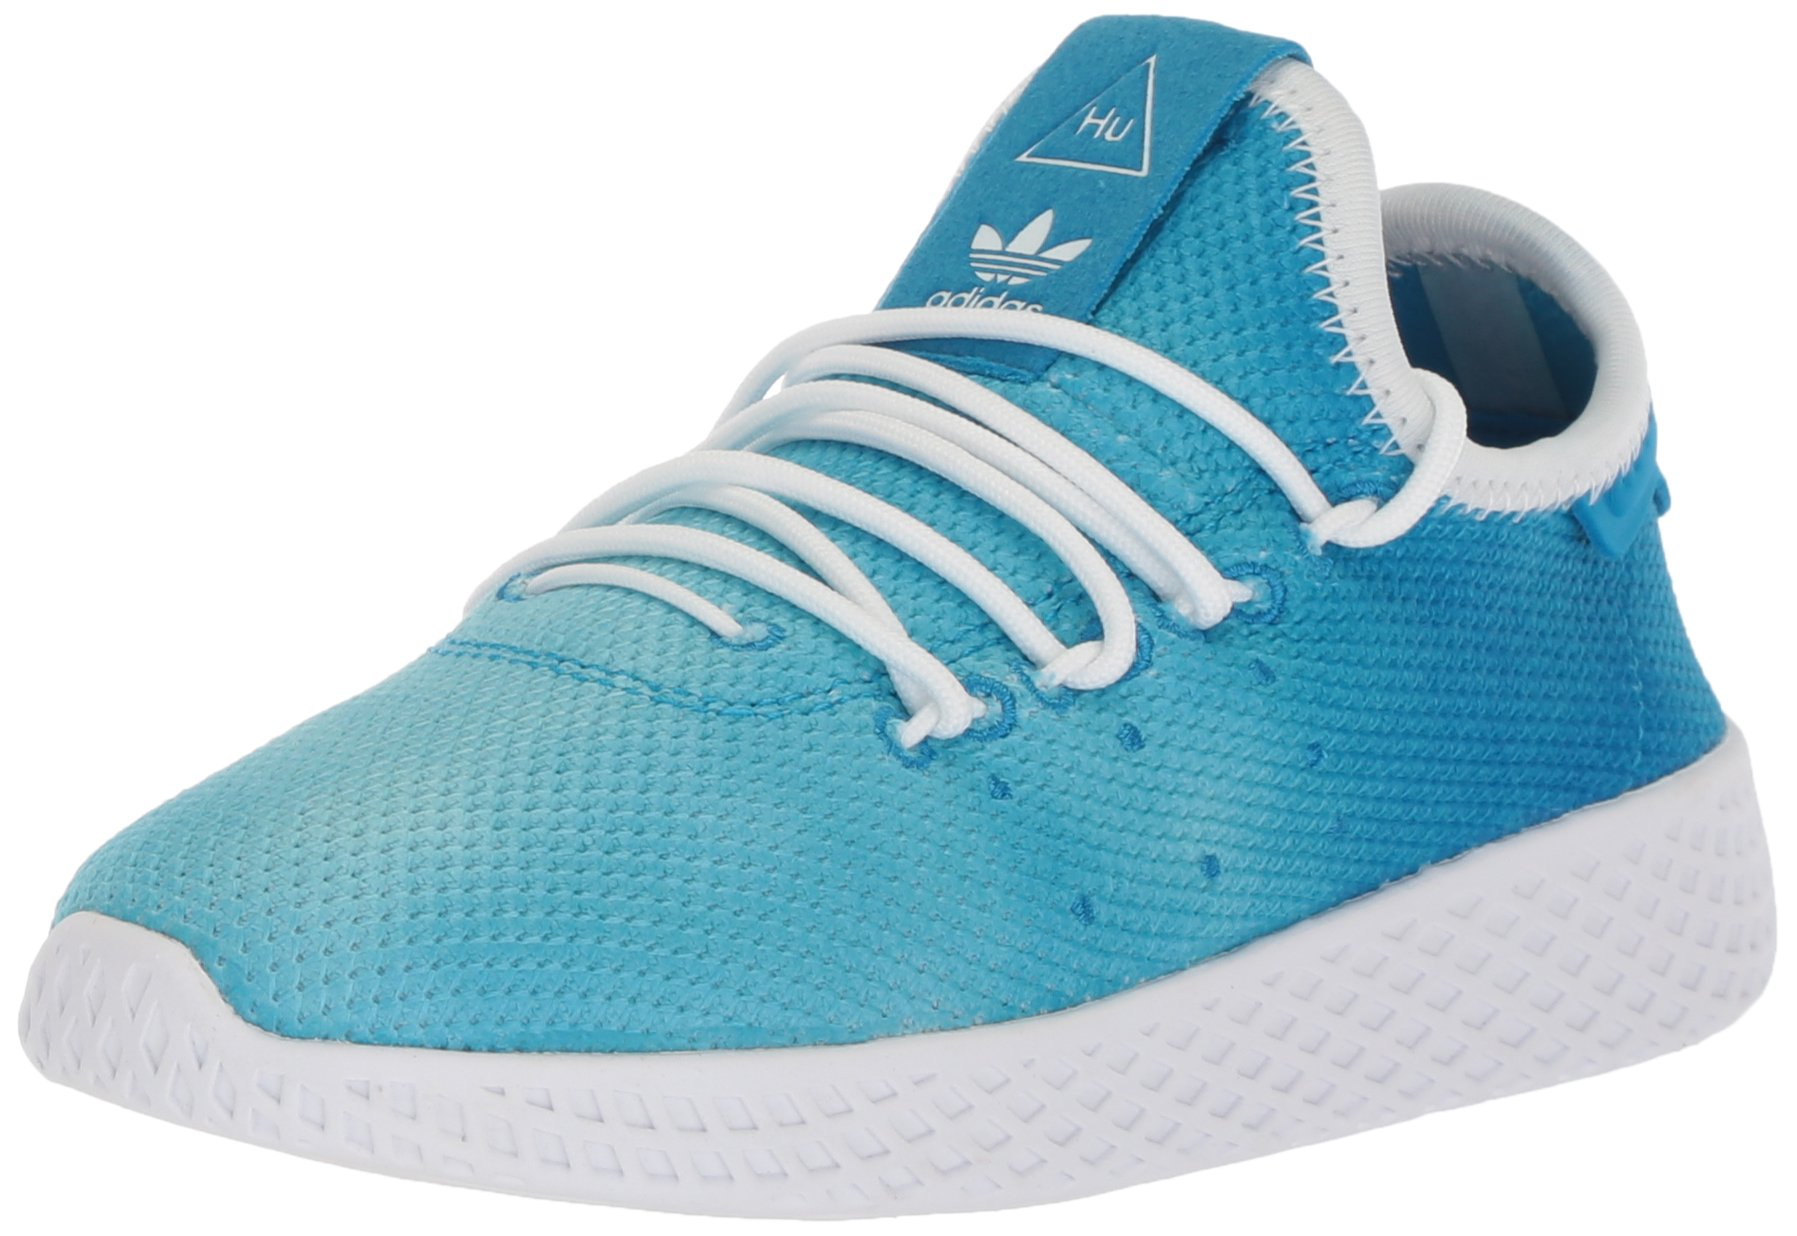 9afcc0318 Galleon - Adidas Originals Unisex-Kids PW Tennis HU C